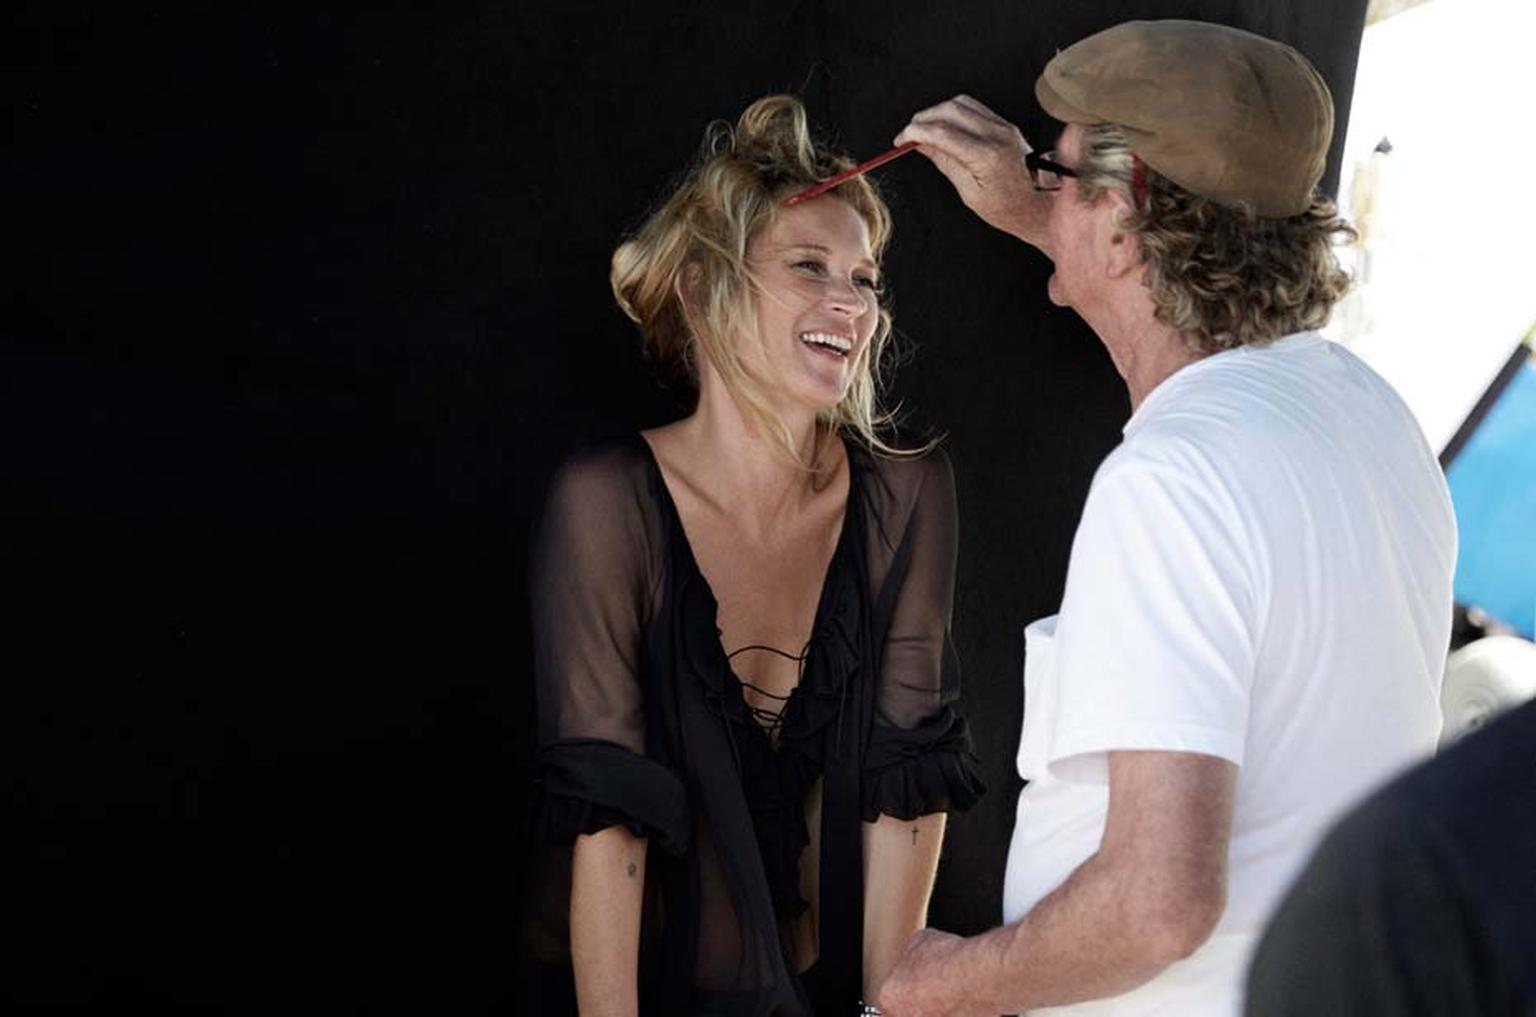 On shoot for David Yurman's 2014 campaign, Enduring Style, with supermodel Kate Moss, who is all smiles for fashion photographer Peter Lindbergh.